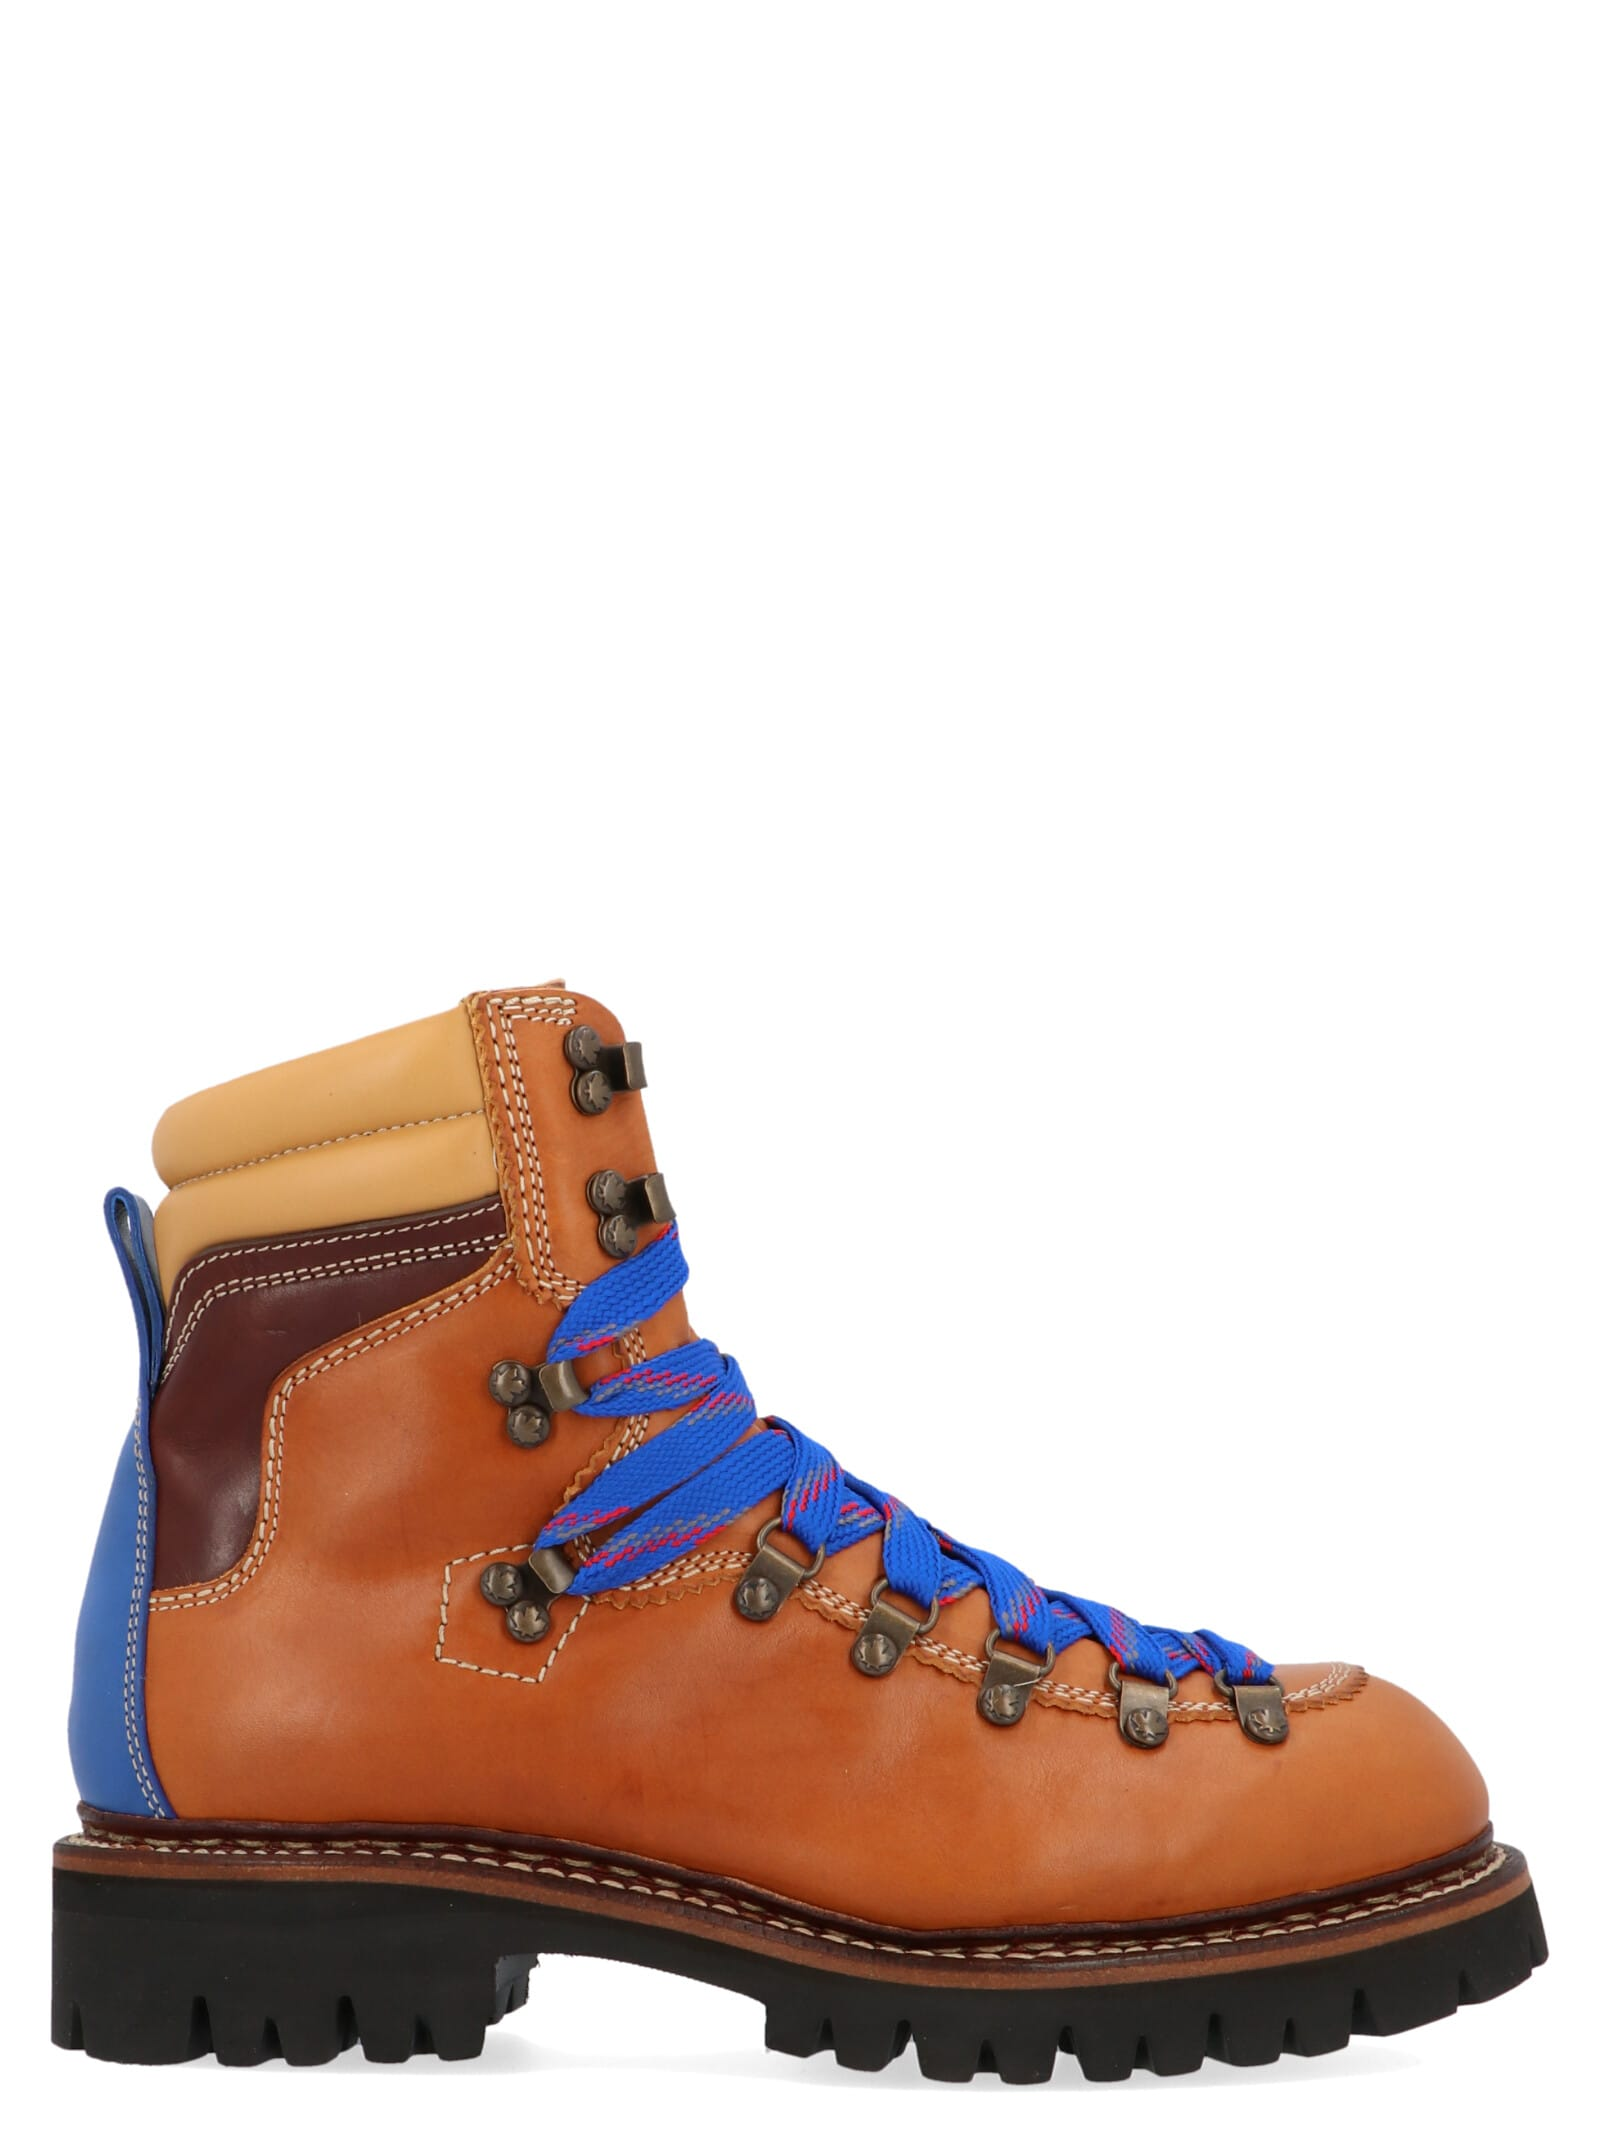 Dsquared2 work Boot Shoes